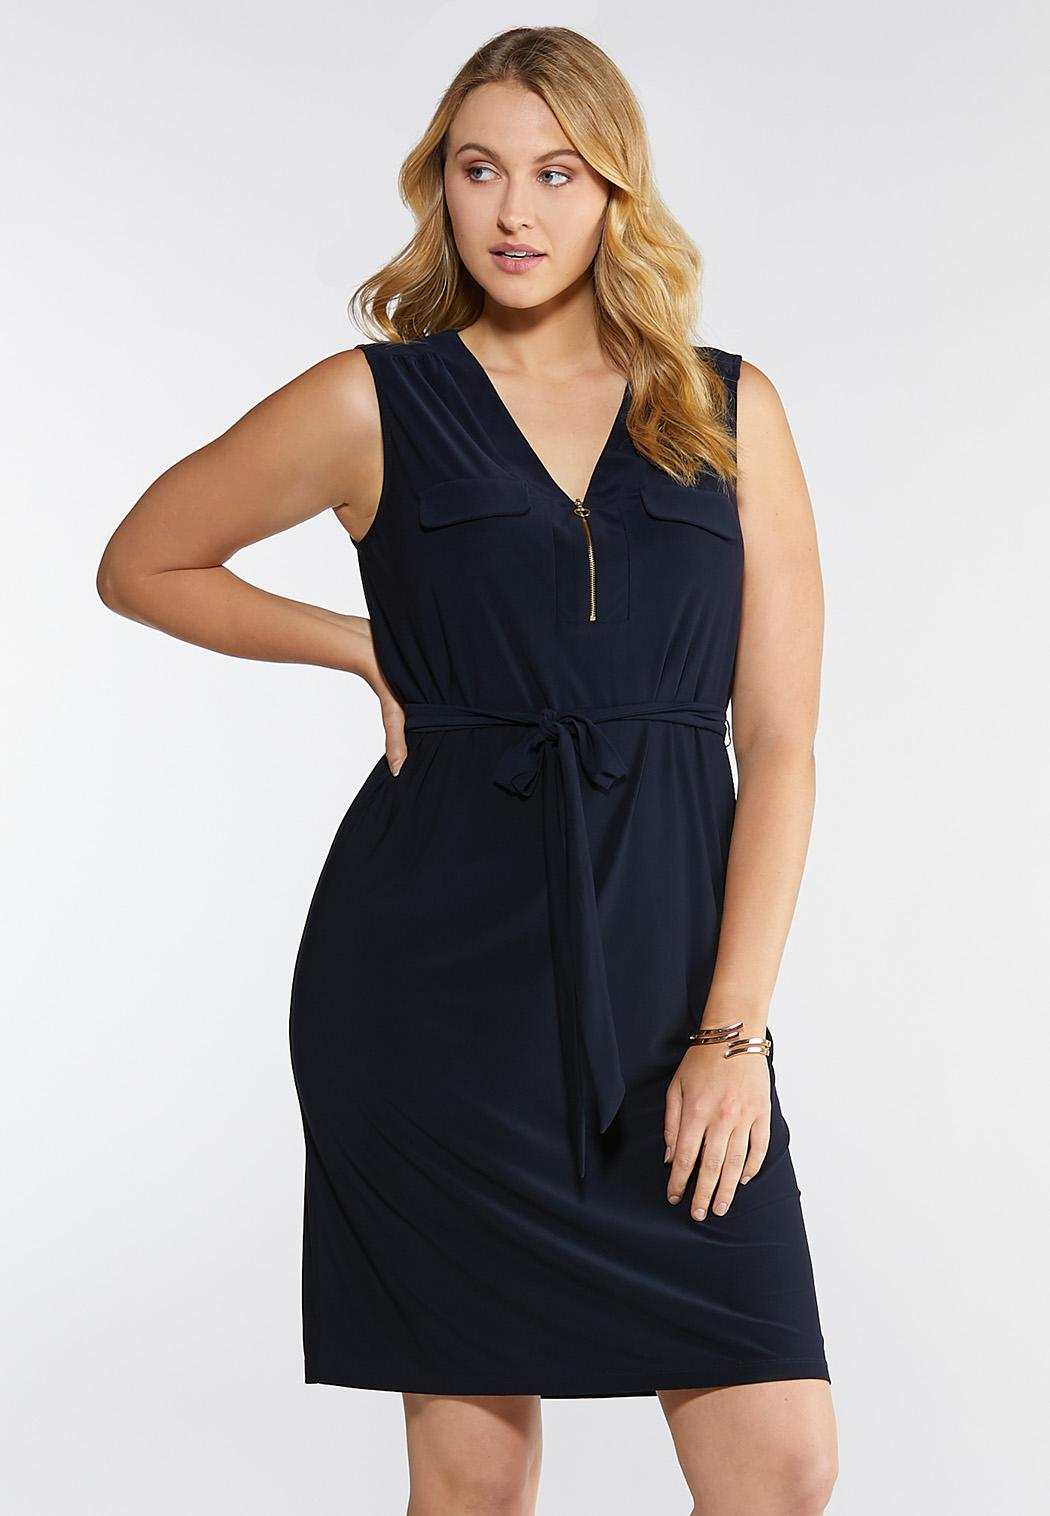 41eea47d78 Plus Size Dresses For Women - Swing, Maxi, Midi & More